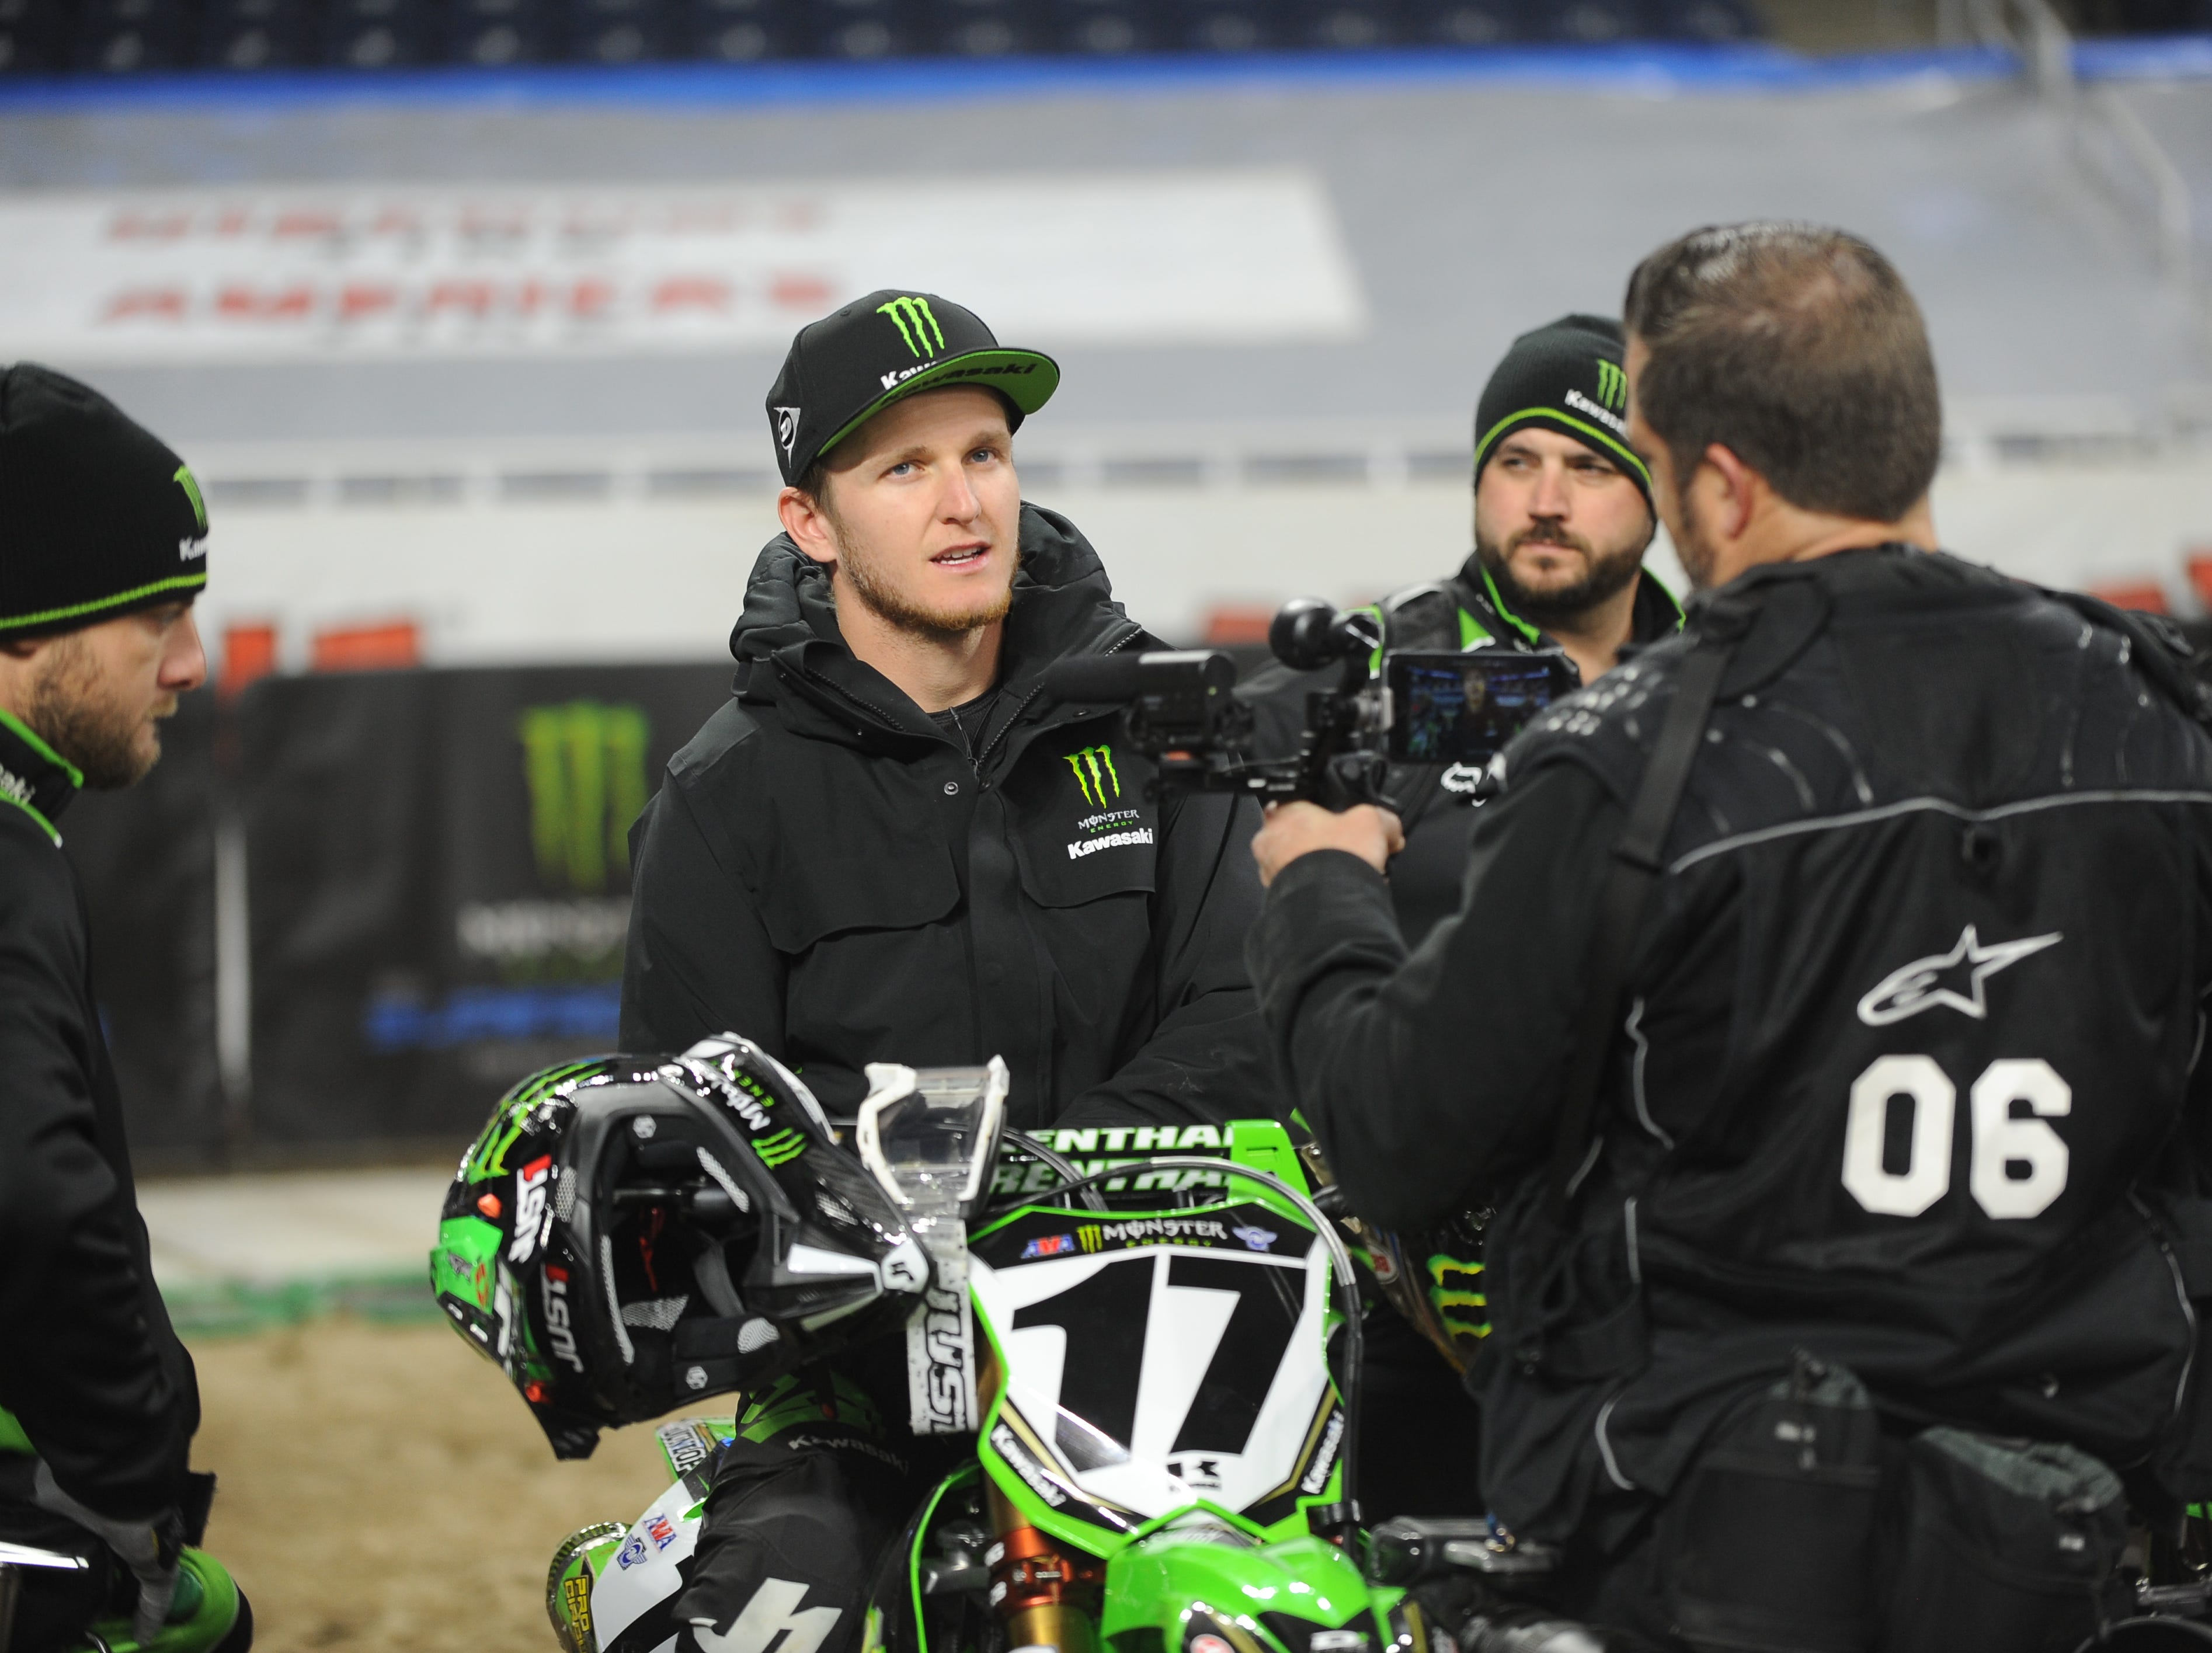 Top Supercross superstar Joey Savatgy (17) speaks to the news media during a practice run for the 2019 Monster Energy Supercross at Ford Field in Detroit on Friday, February 22, 2019.